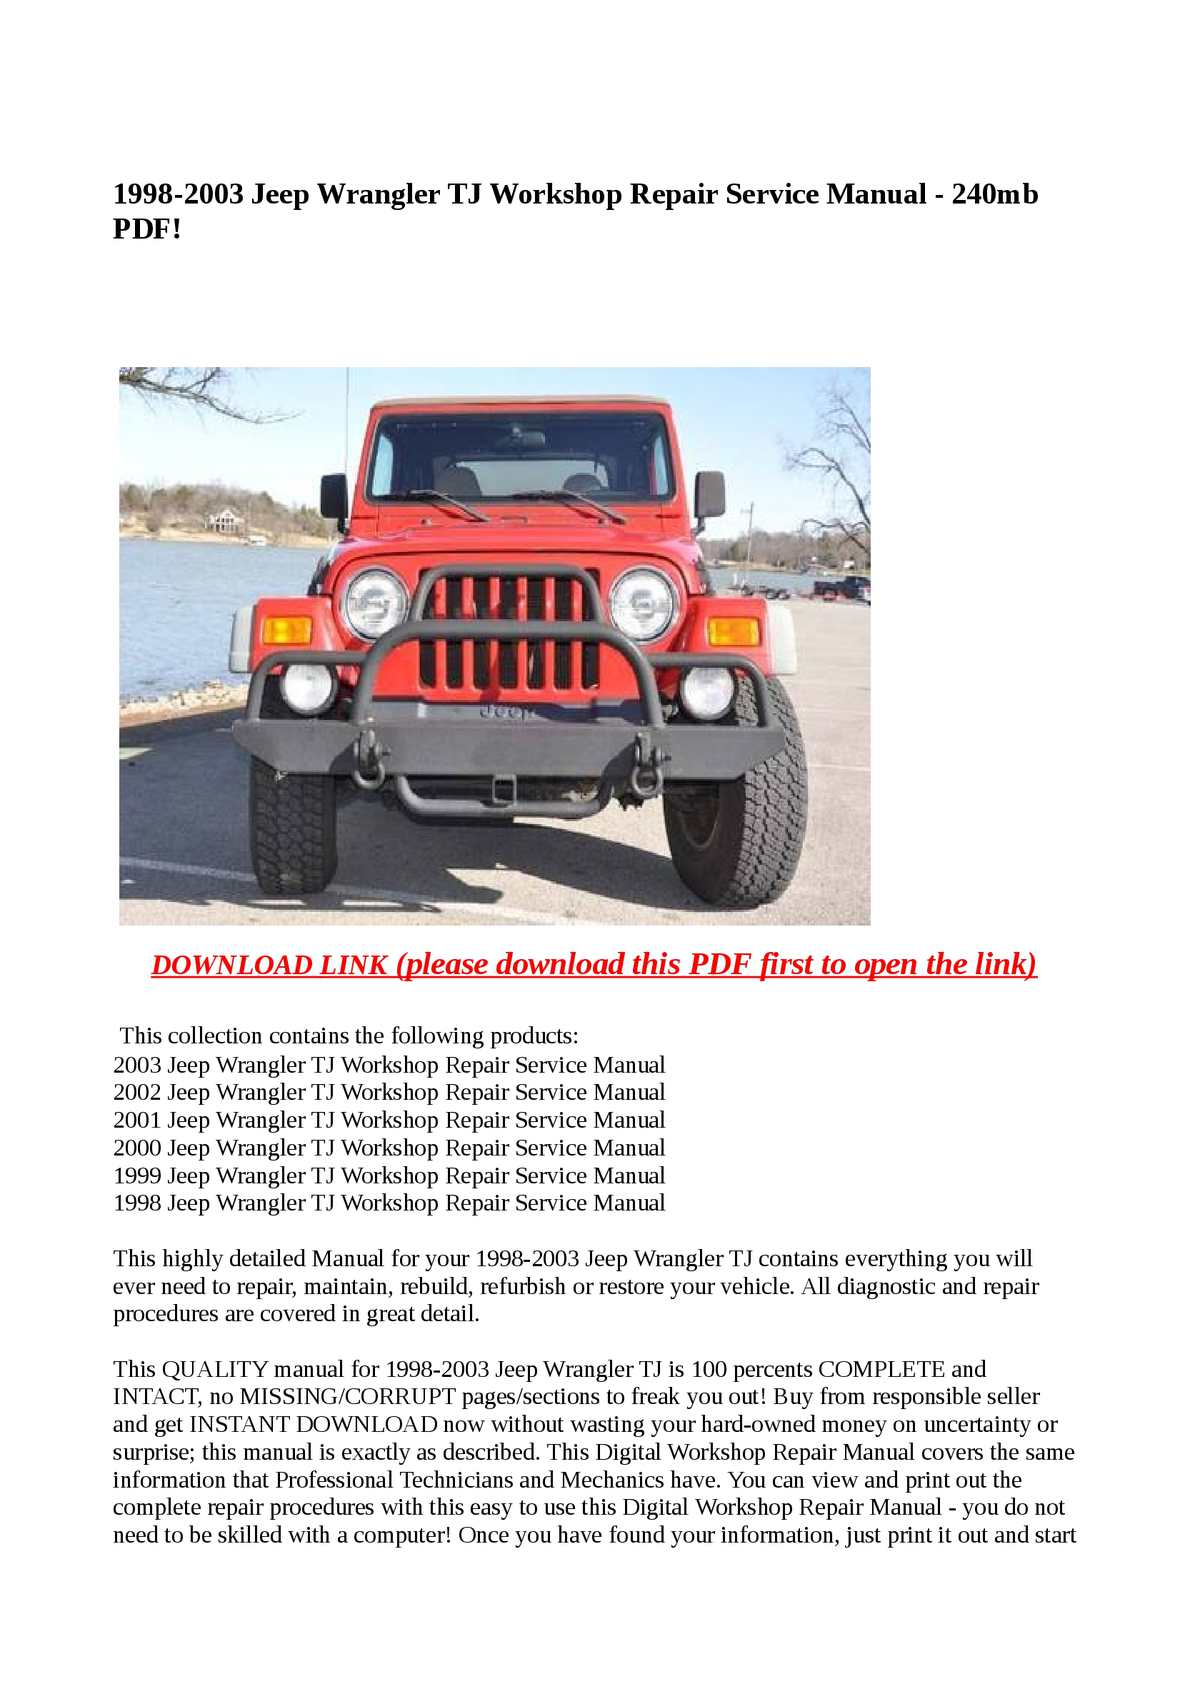 Calaméo - 1998-2003 Jeep Wrangler TJ Workshop Repair Service Manual - 240mb  PDF!